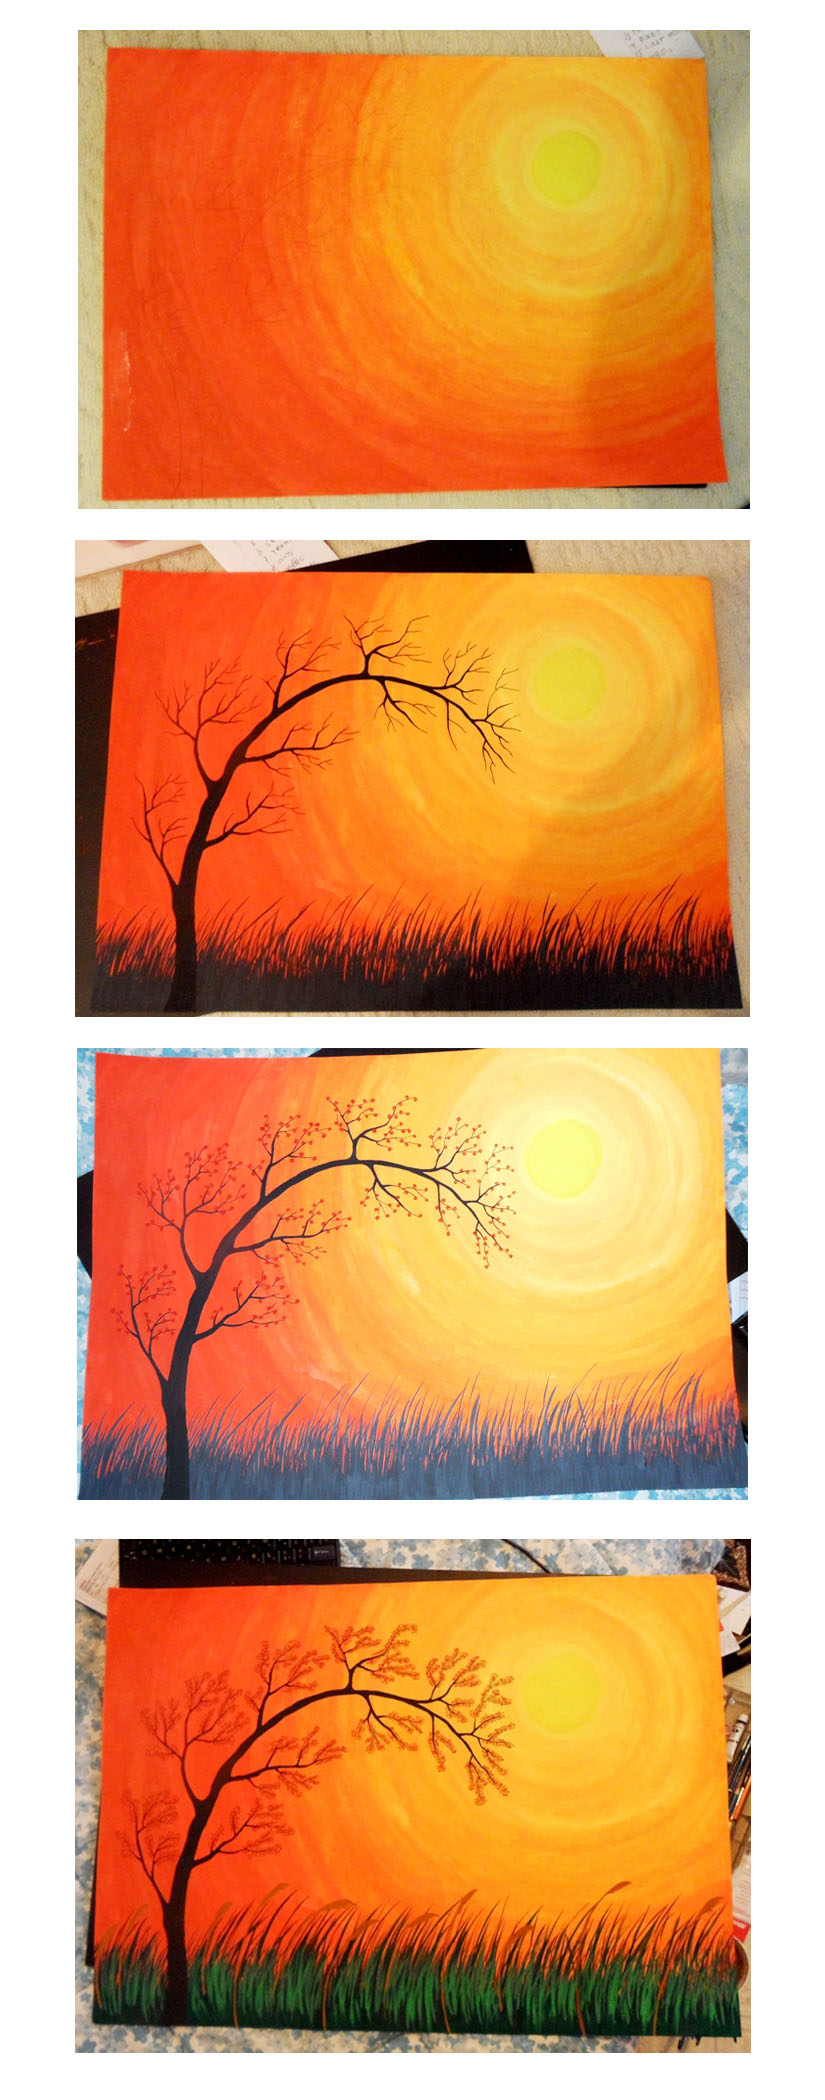 [Painting] On bigger paper size: Sunset in a Pasture | For ...